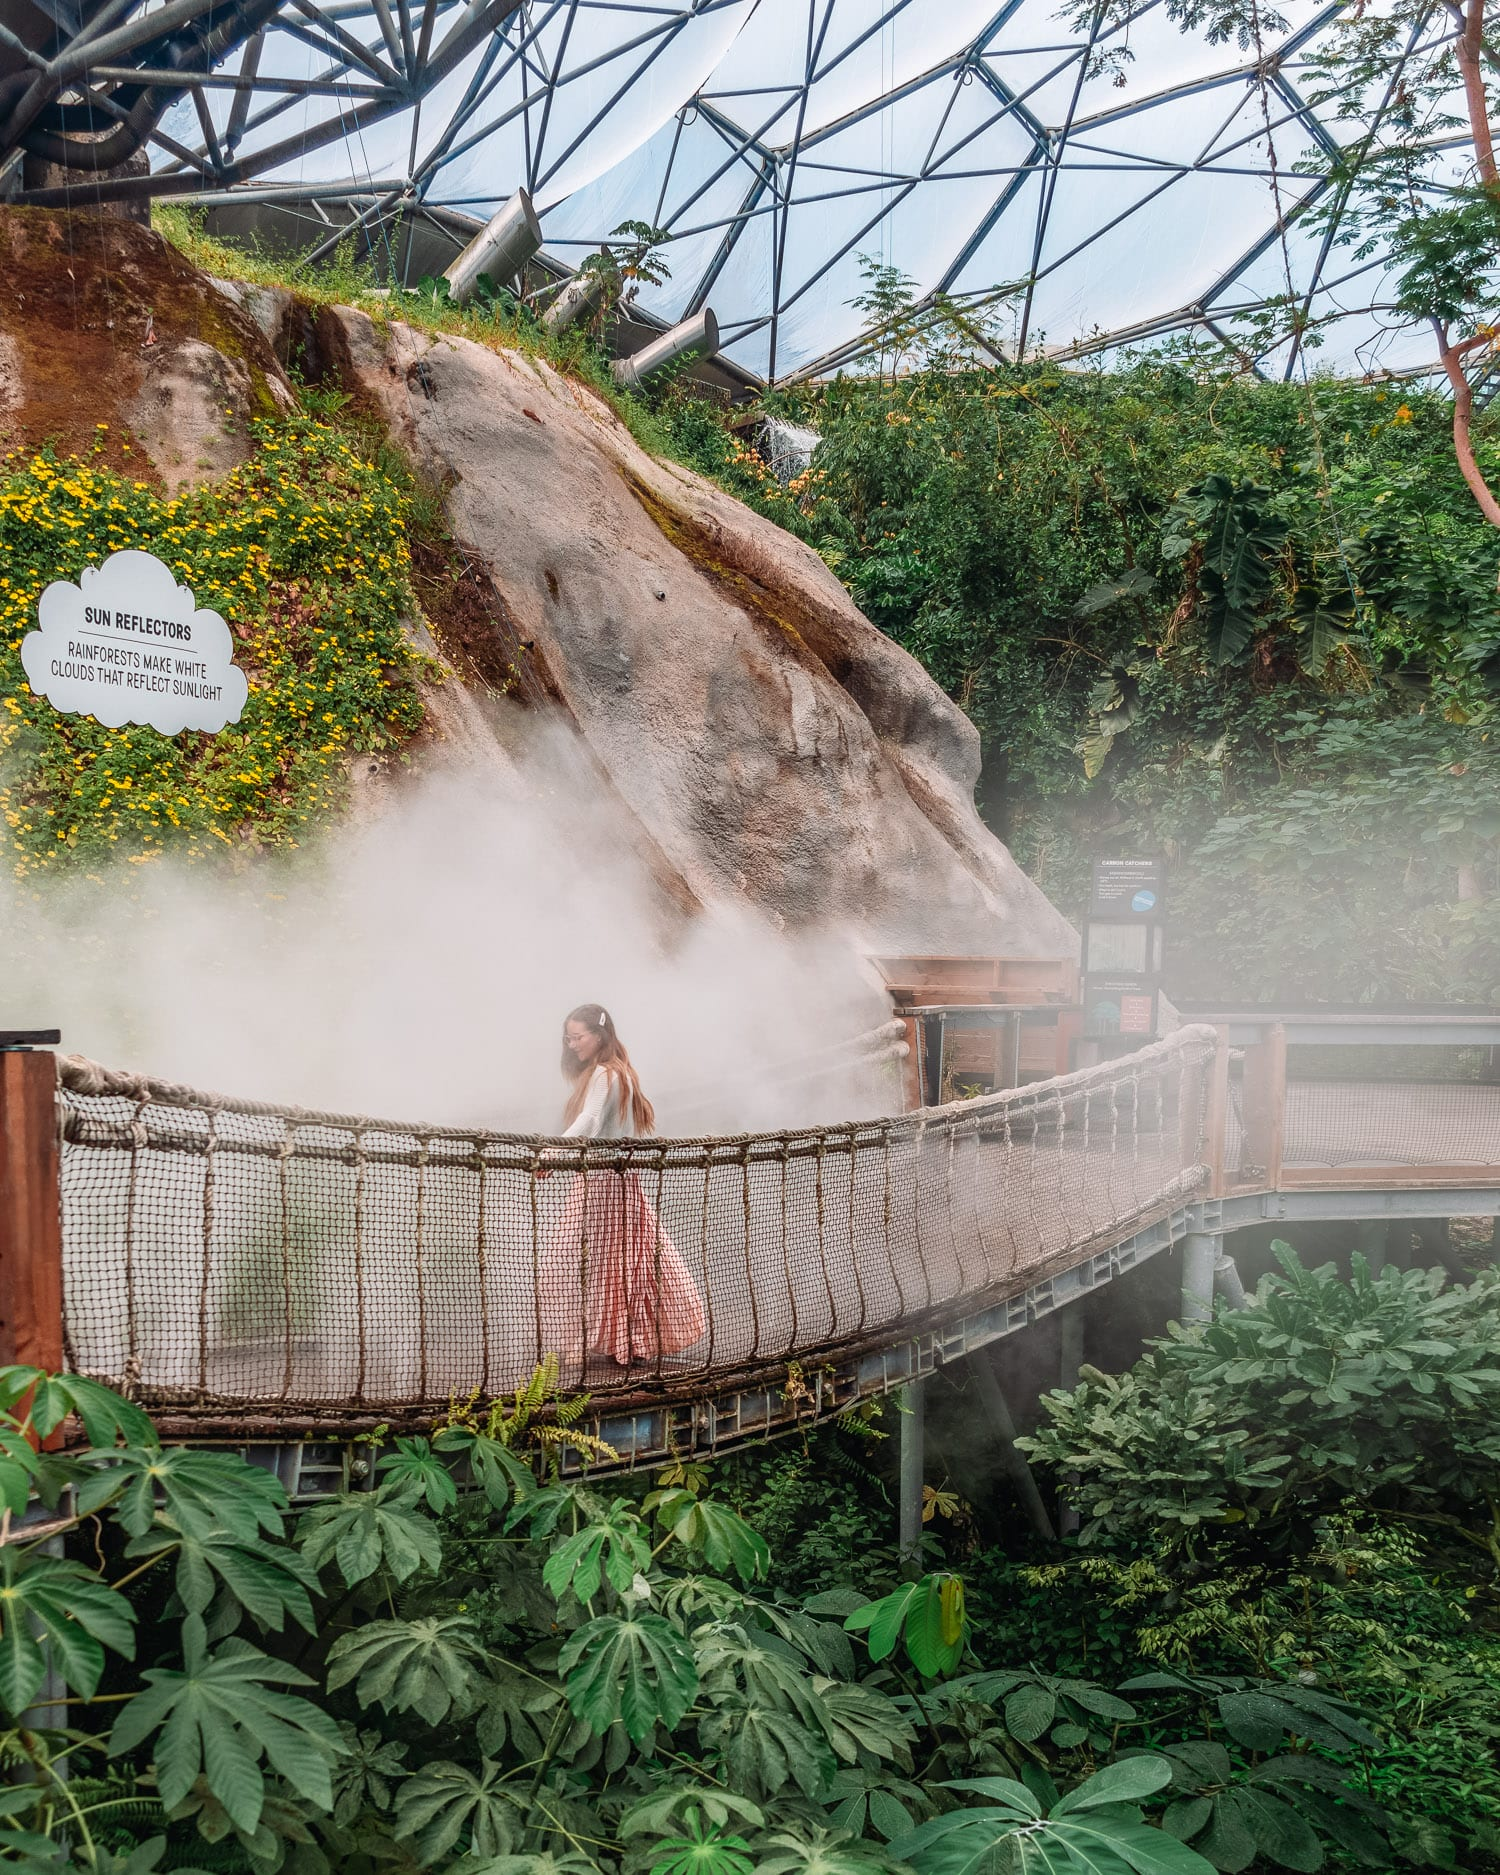 The Rainforest Biome, Eden Project | Most Instagrammable Places in Cornwall, UK